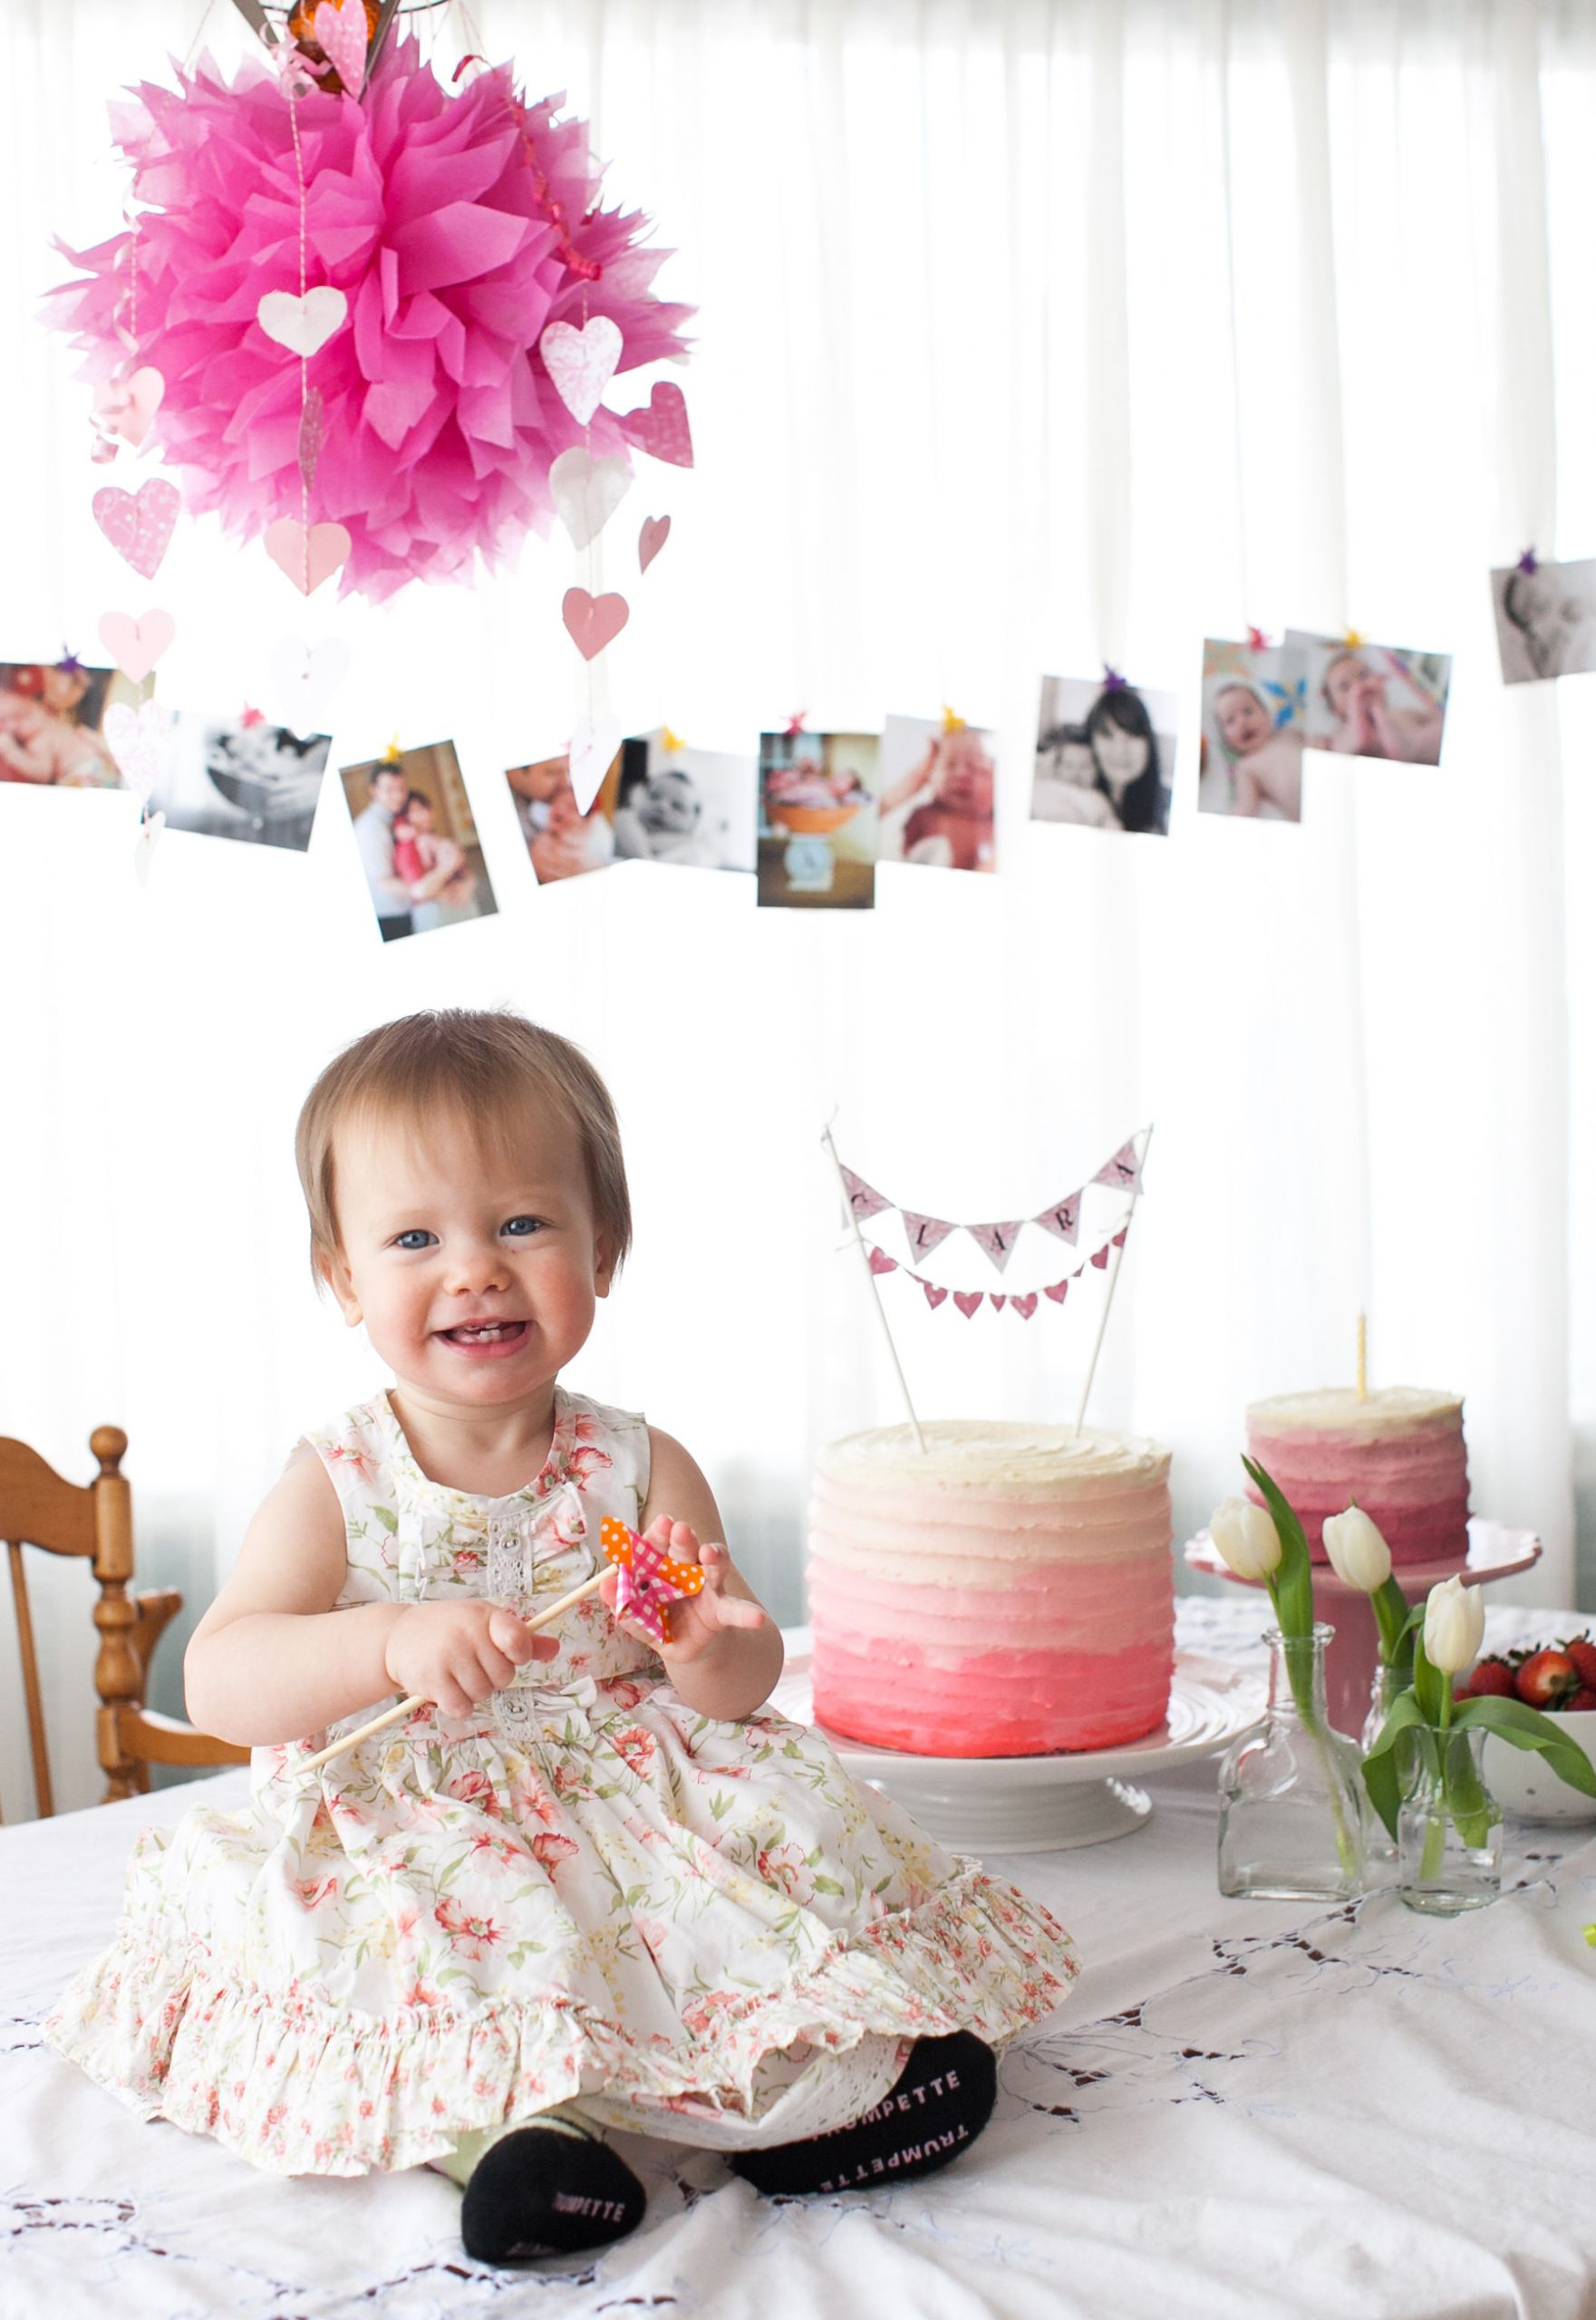 Baby First Party Ideas  First birthday party ideas recipe Apple Spice Cake with